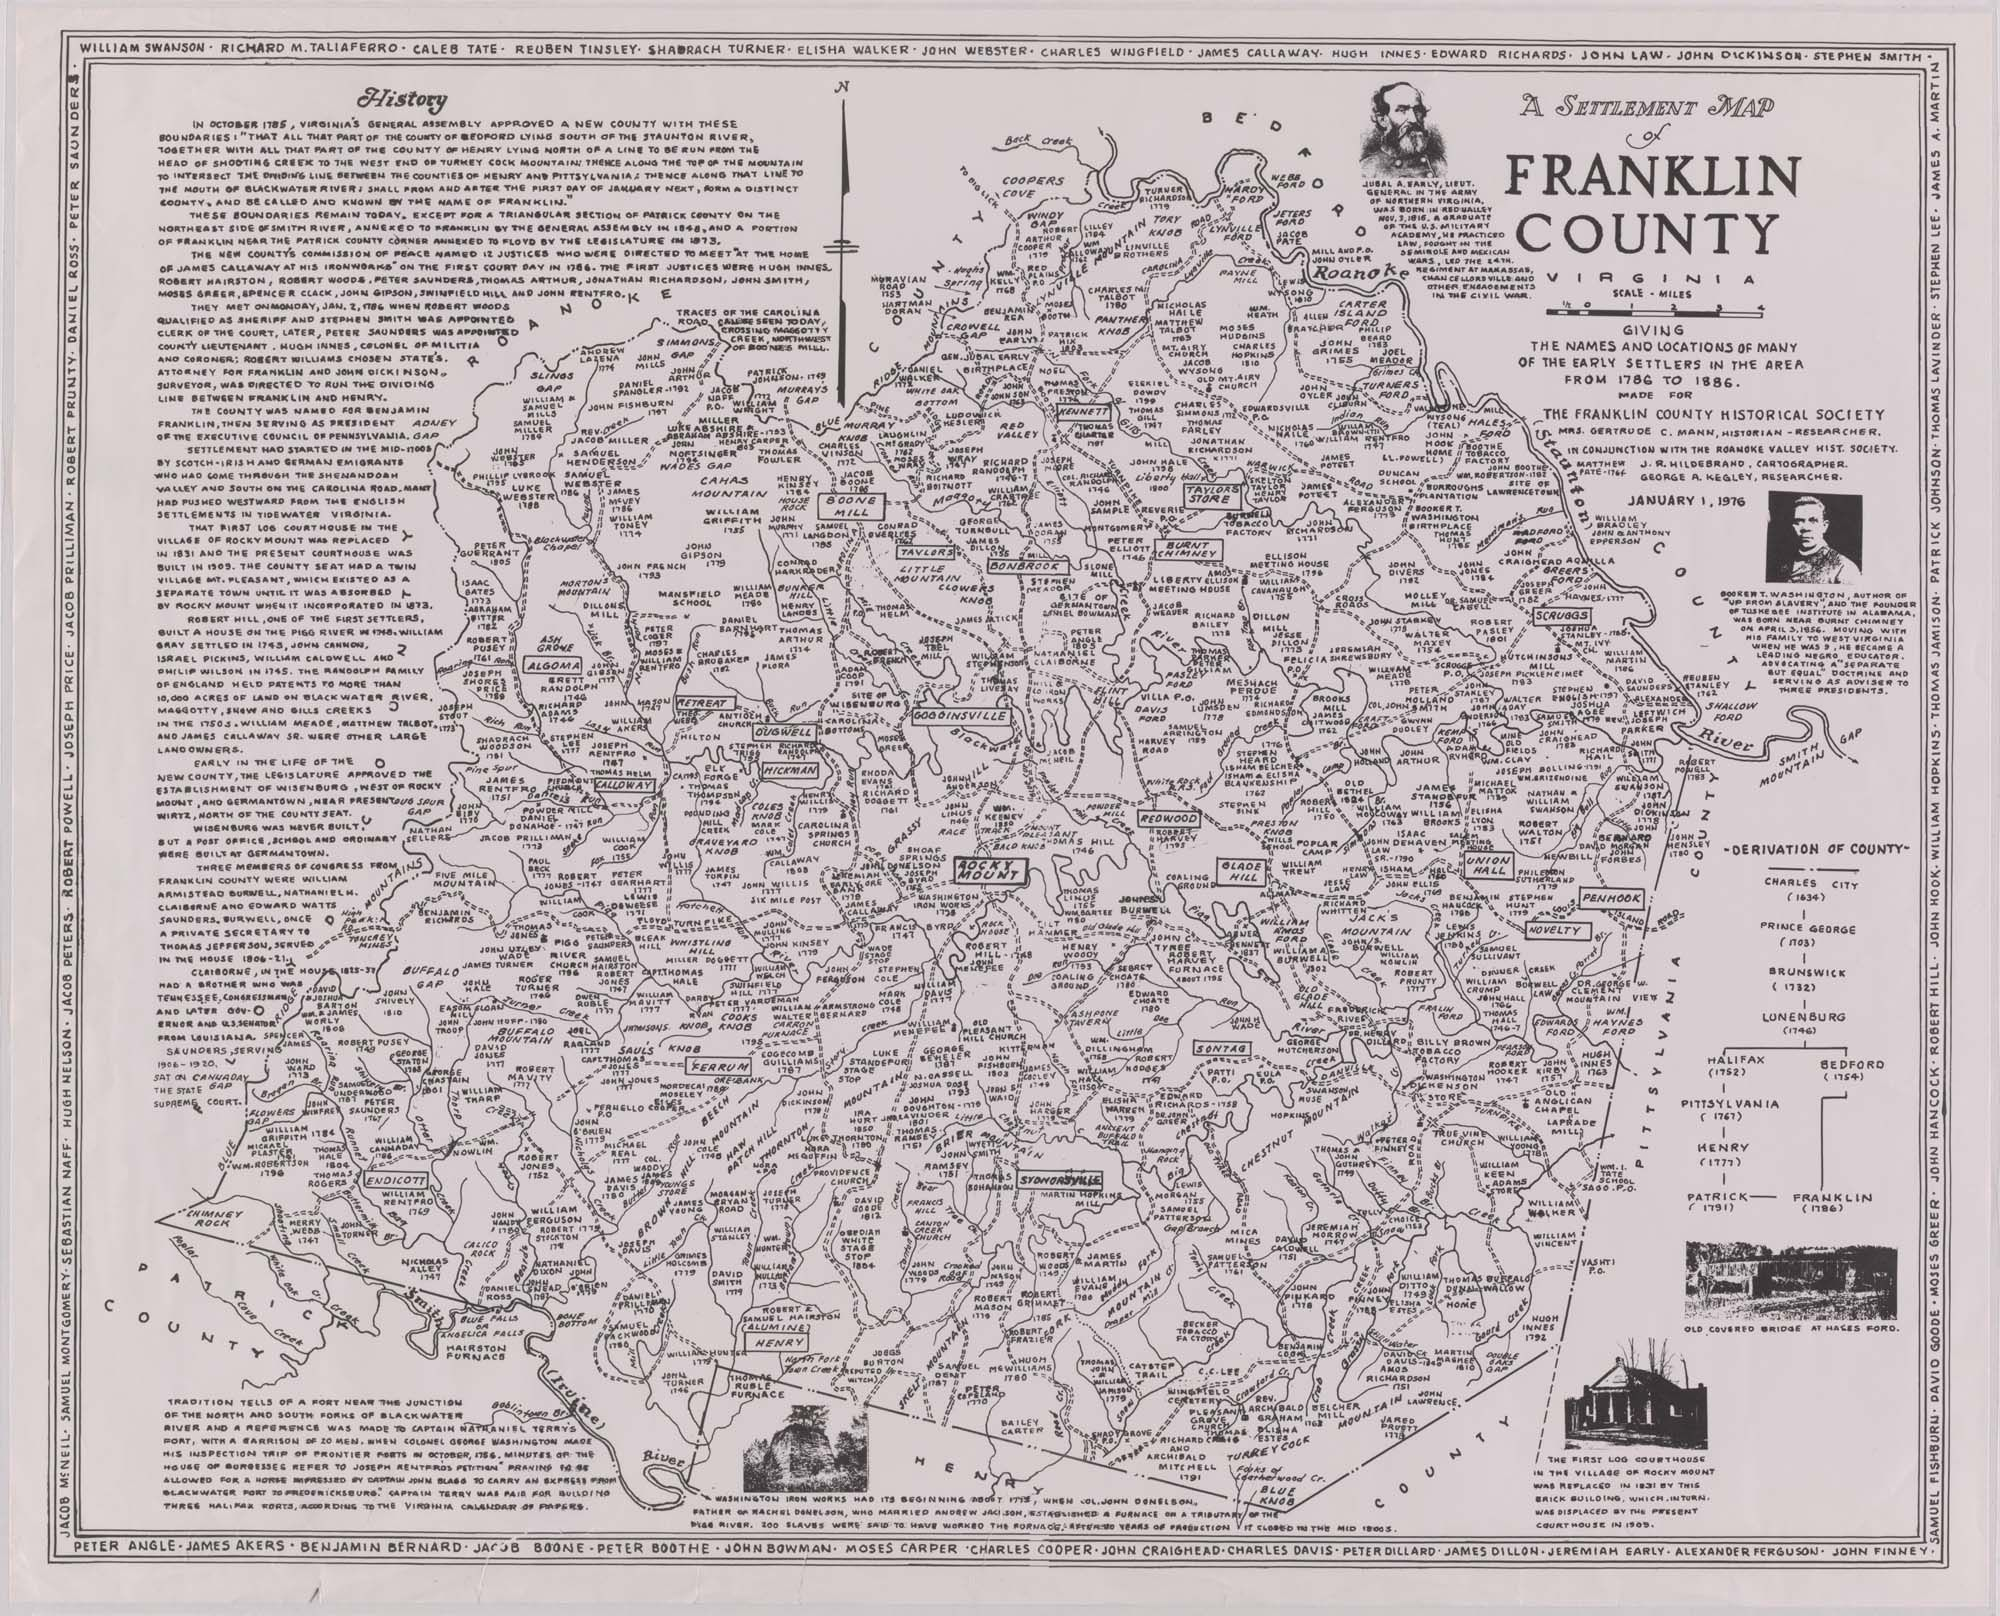 Franklin Virginia History Title A Settlement Map Of Franklin County Subject Virginia Franklin Genealogy Map Virginia History Genealogy Organization